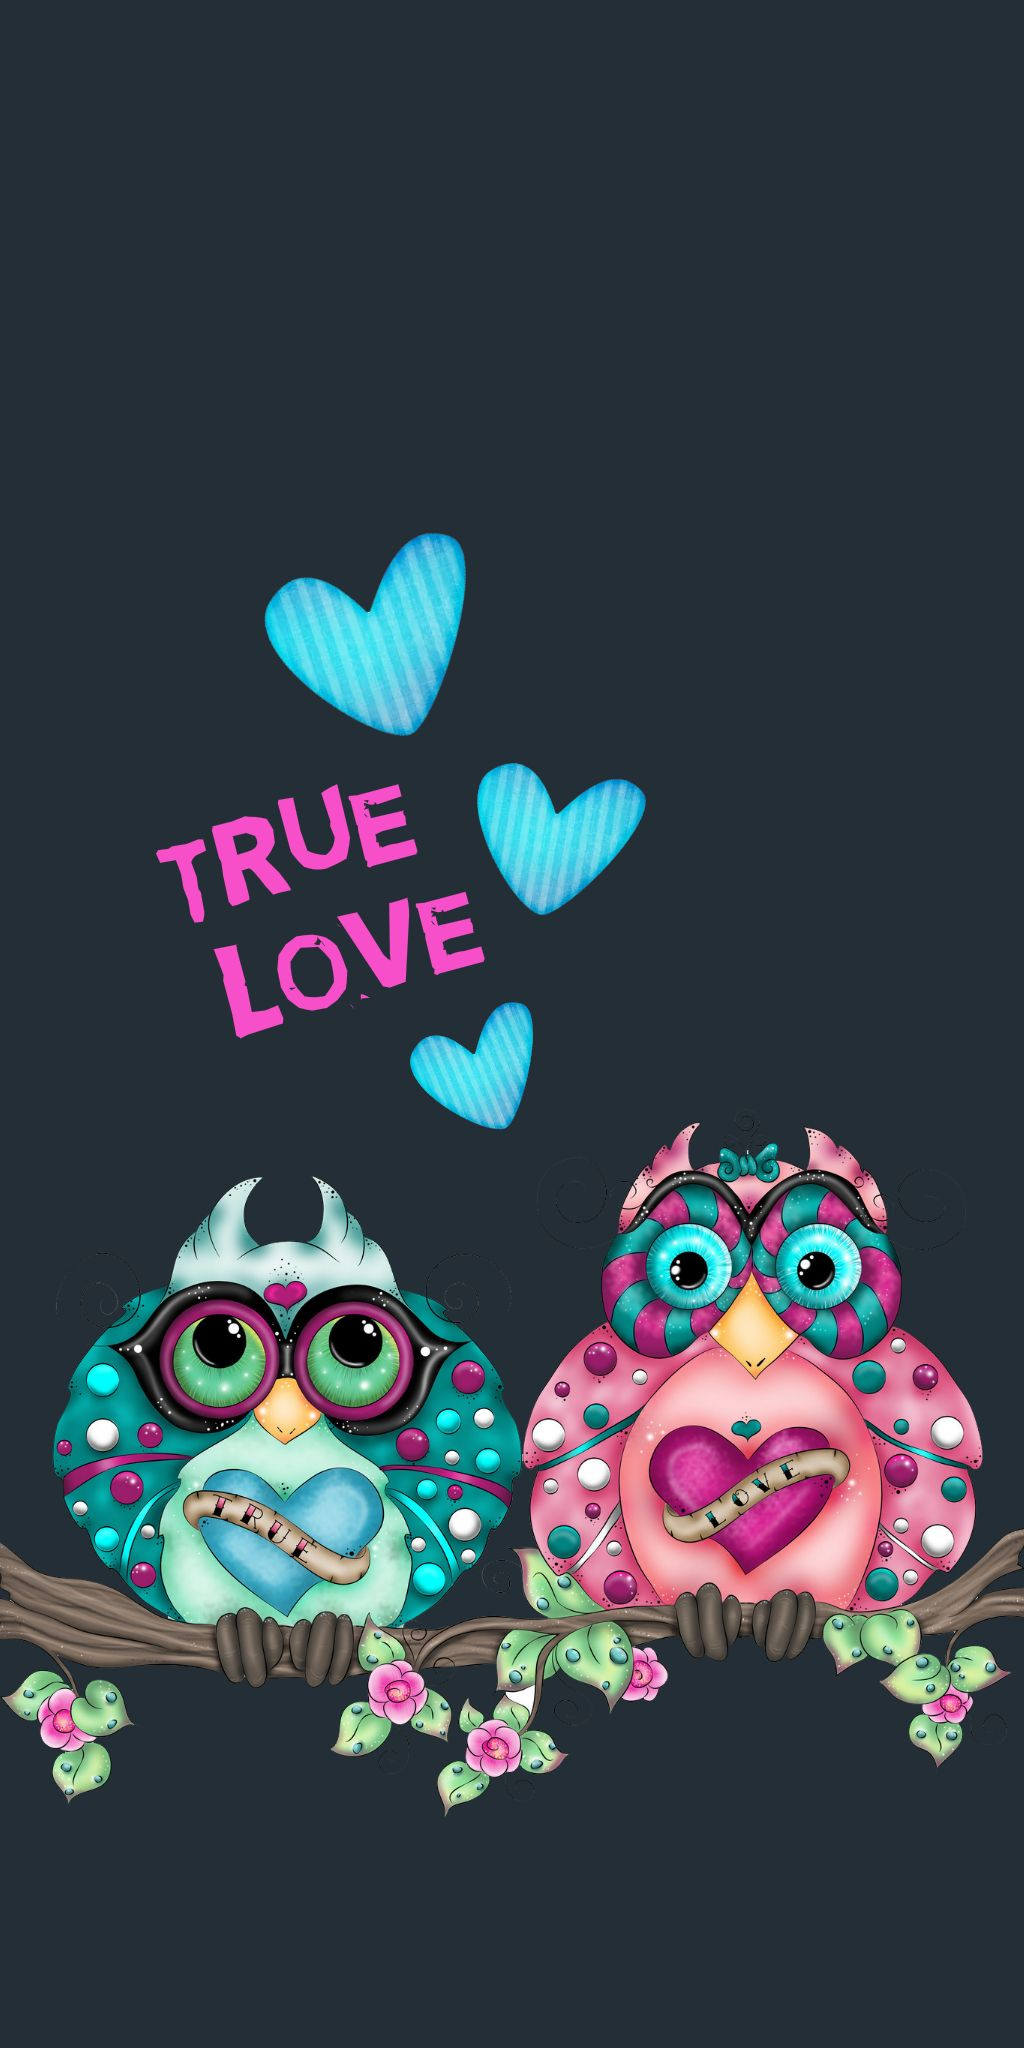 True Love Cute Owls Wallpaper Cute Owls Wallpaper Owl Wallpaper